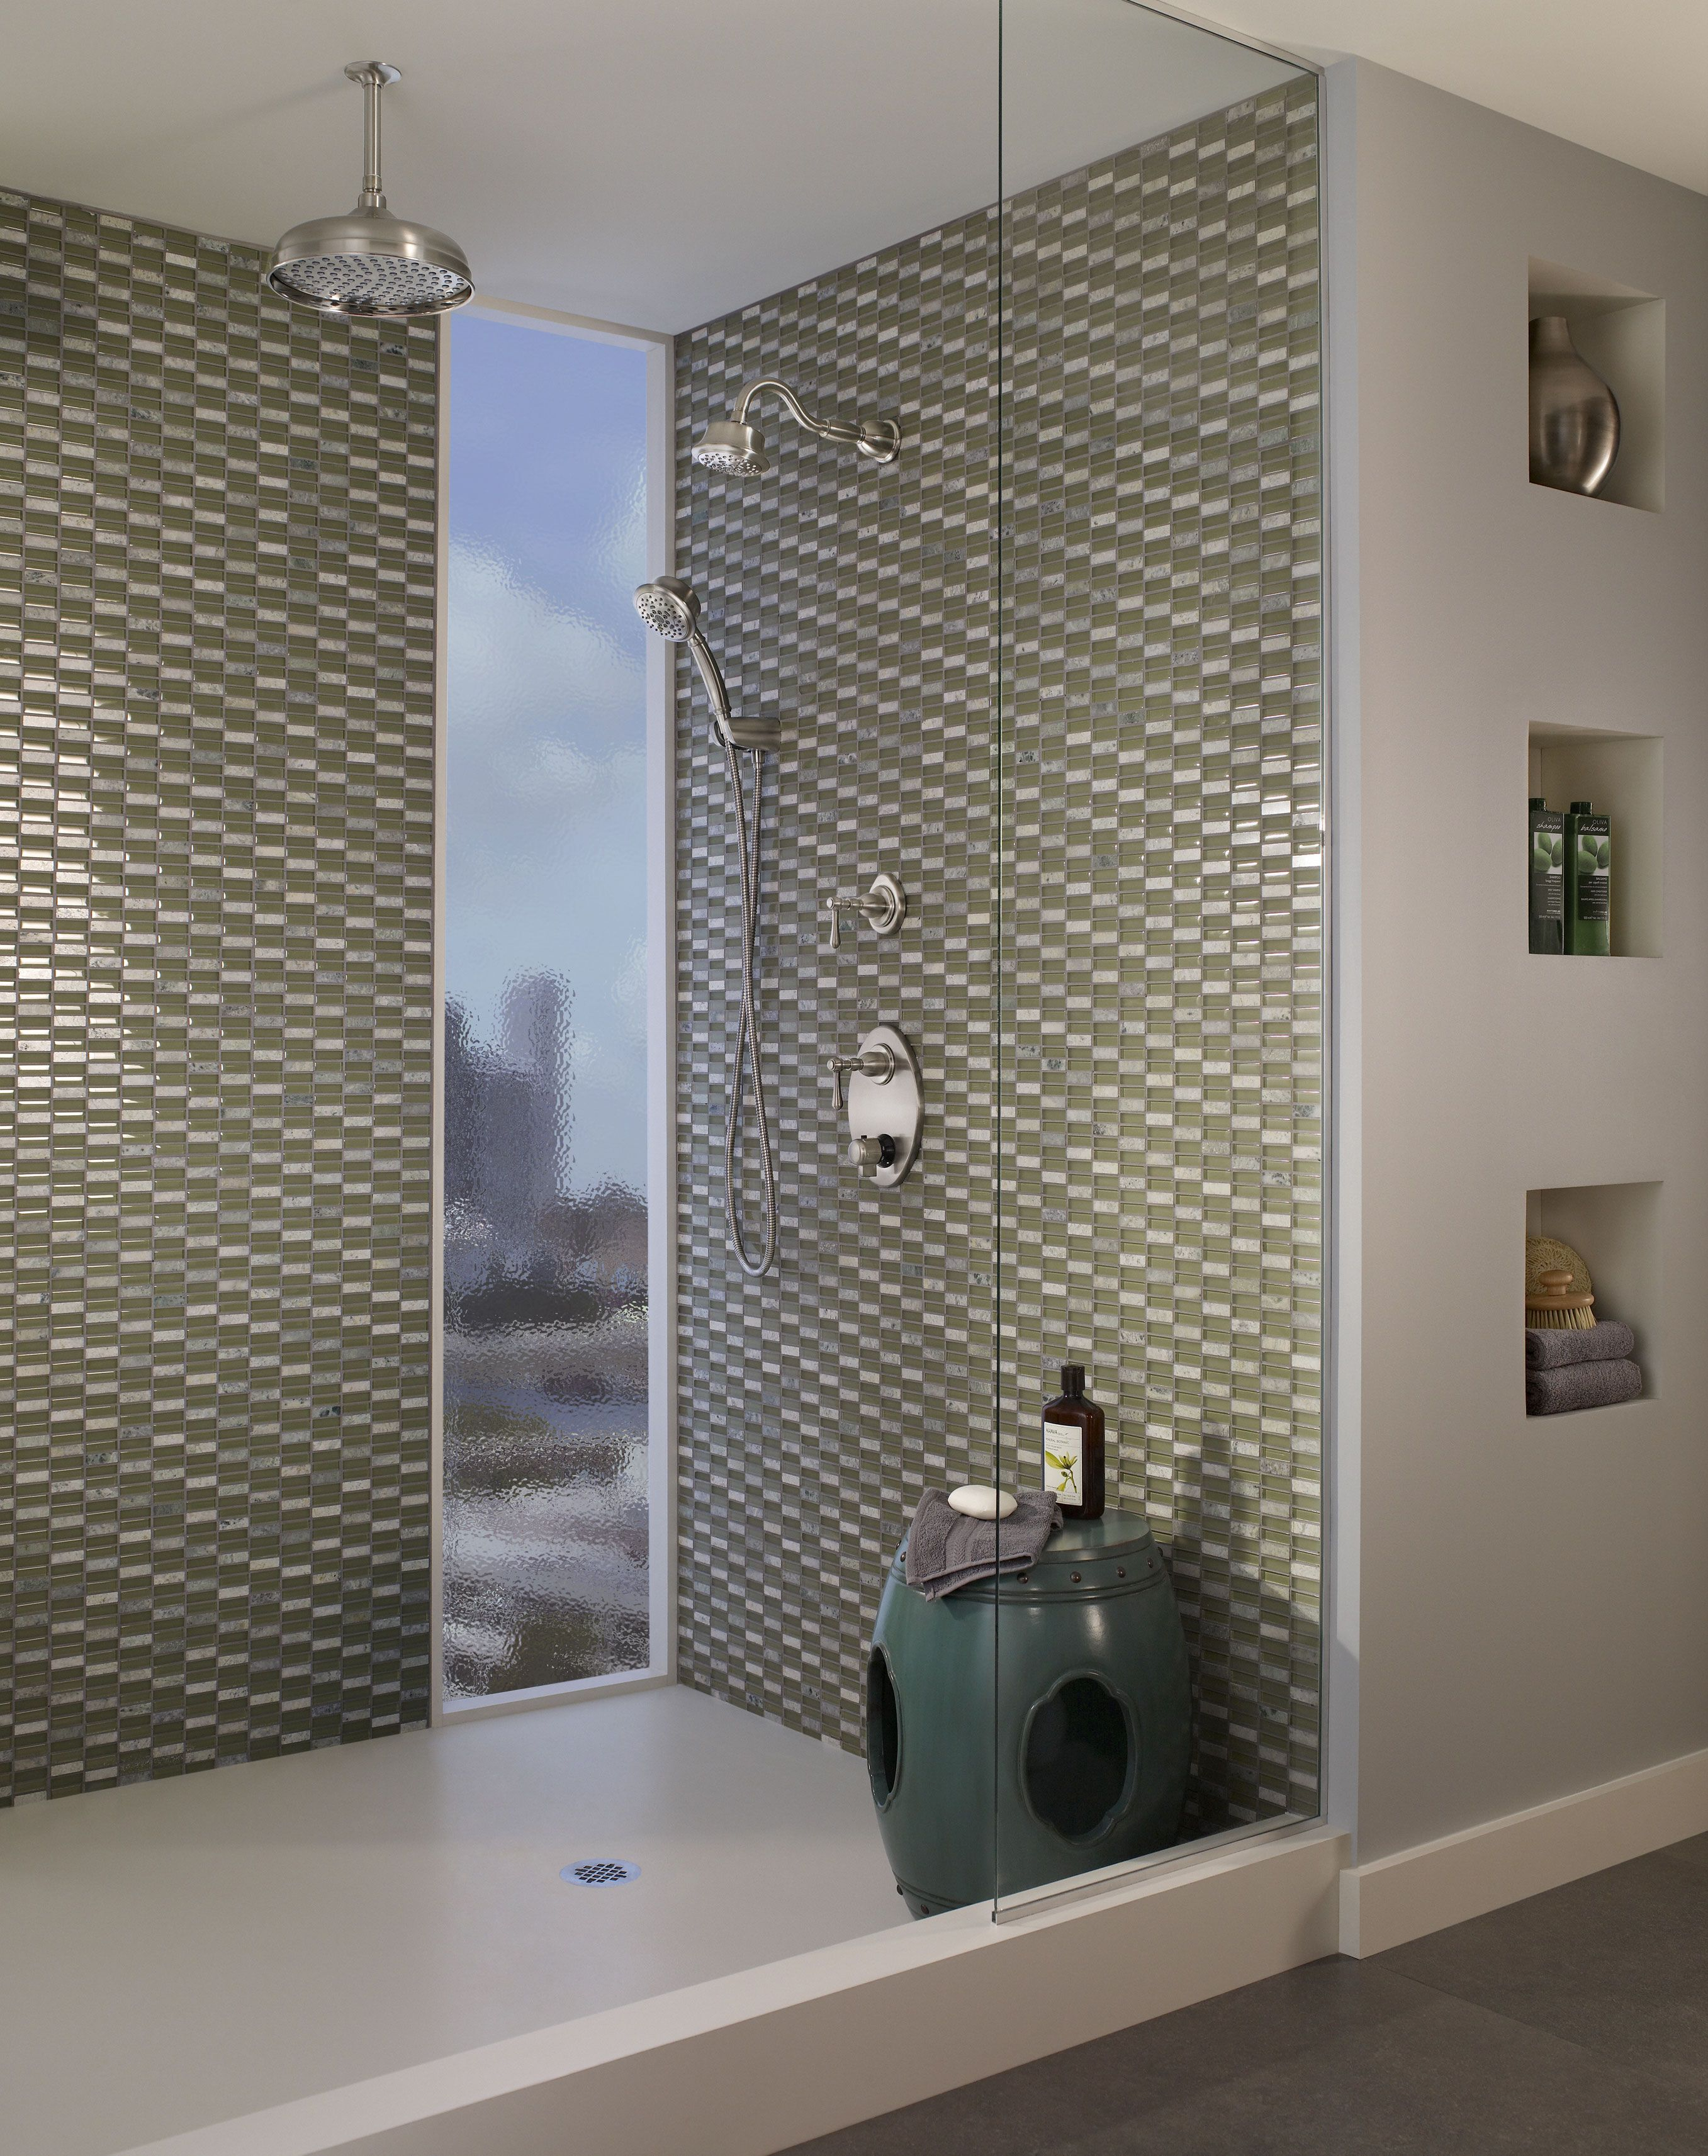 Charmant A Relaxing Shower System. The Perfect Way To Wash Away The Day. By Danze.com